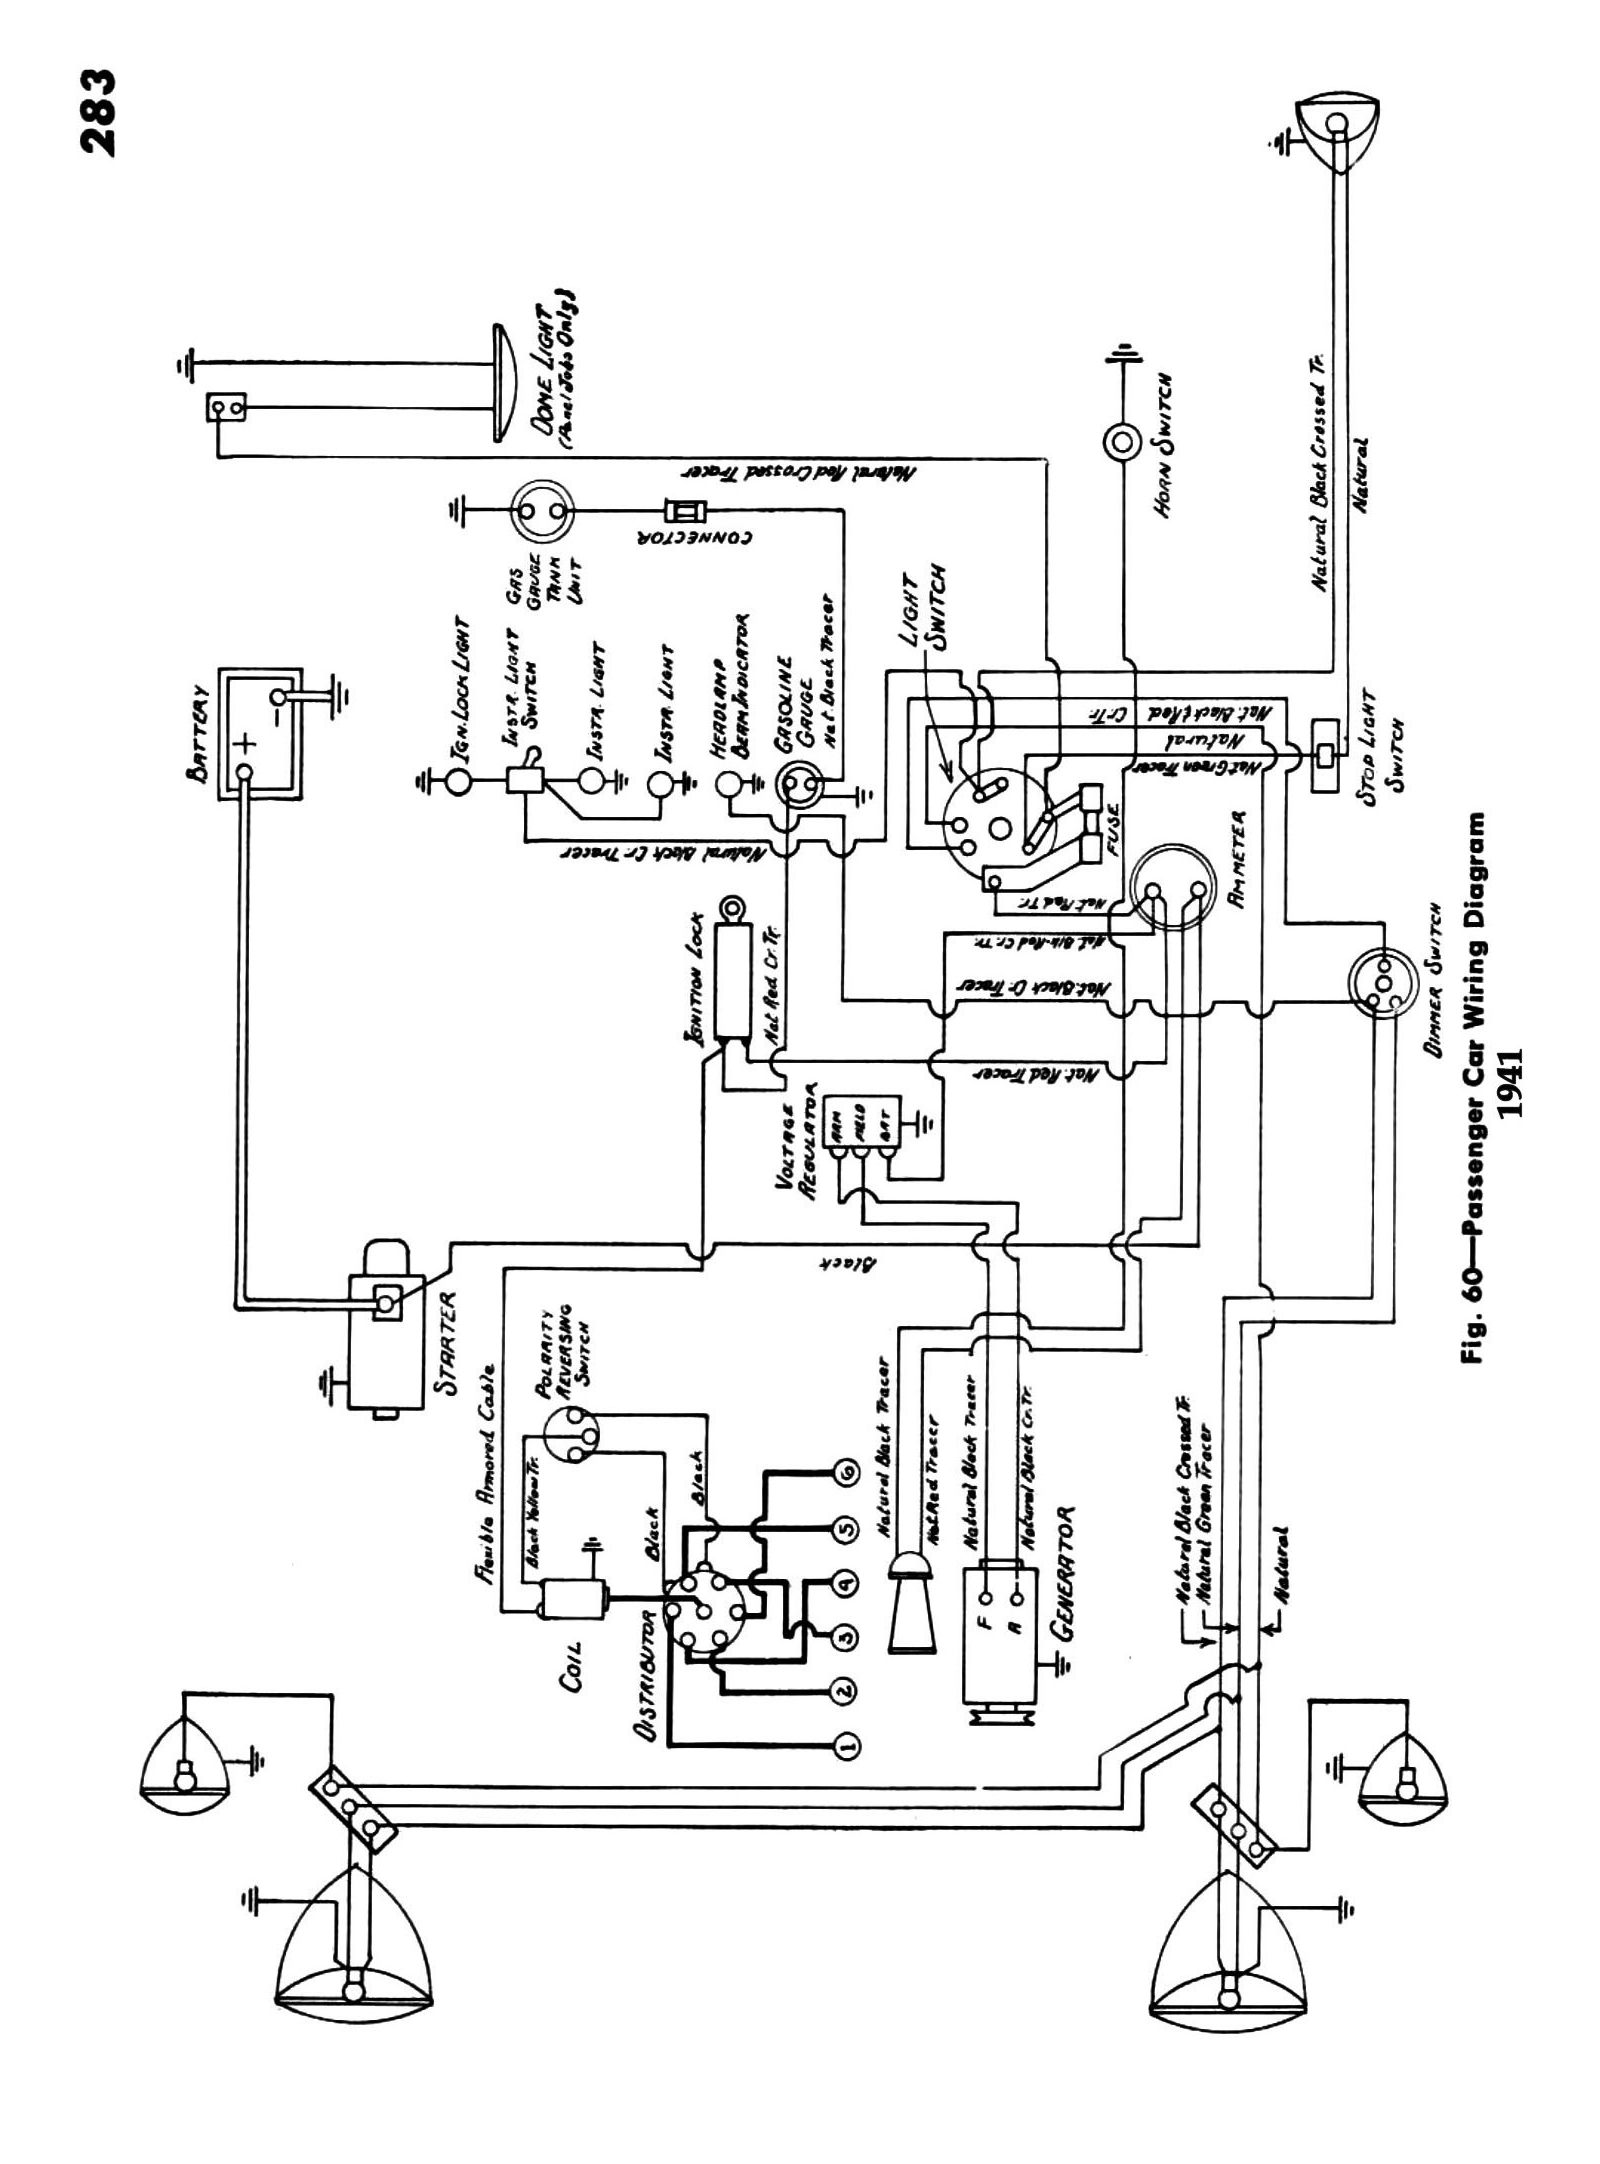 41csm283 chevy wiring diagrams 64 Chevy Impala Wiring Diagram at webbmarketing.co